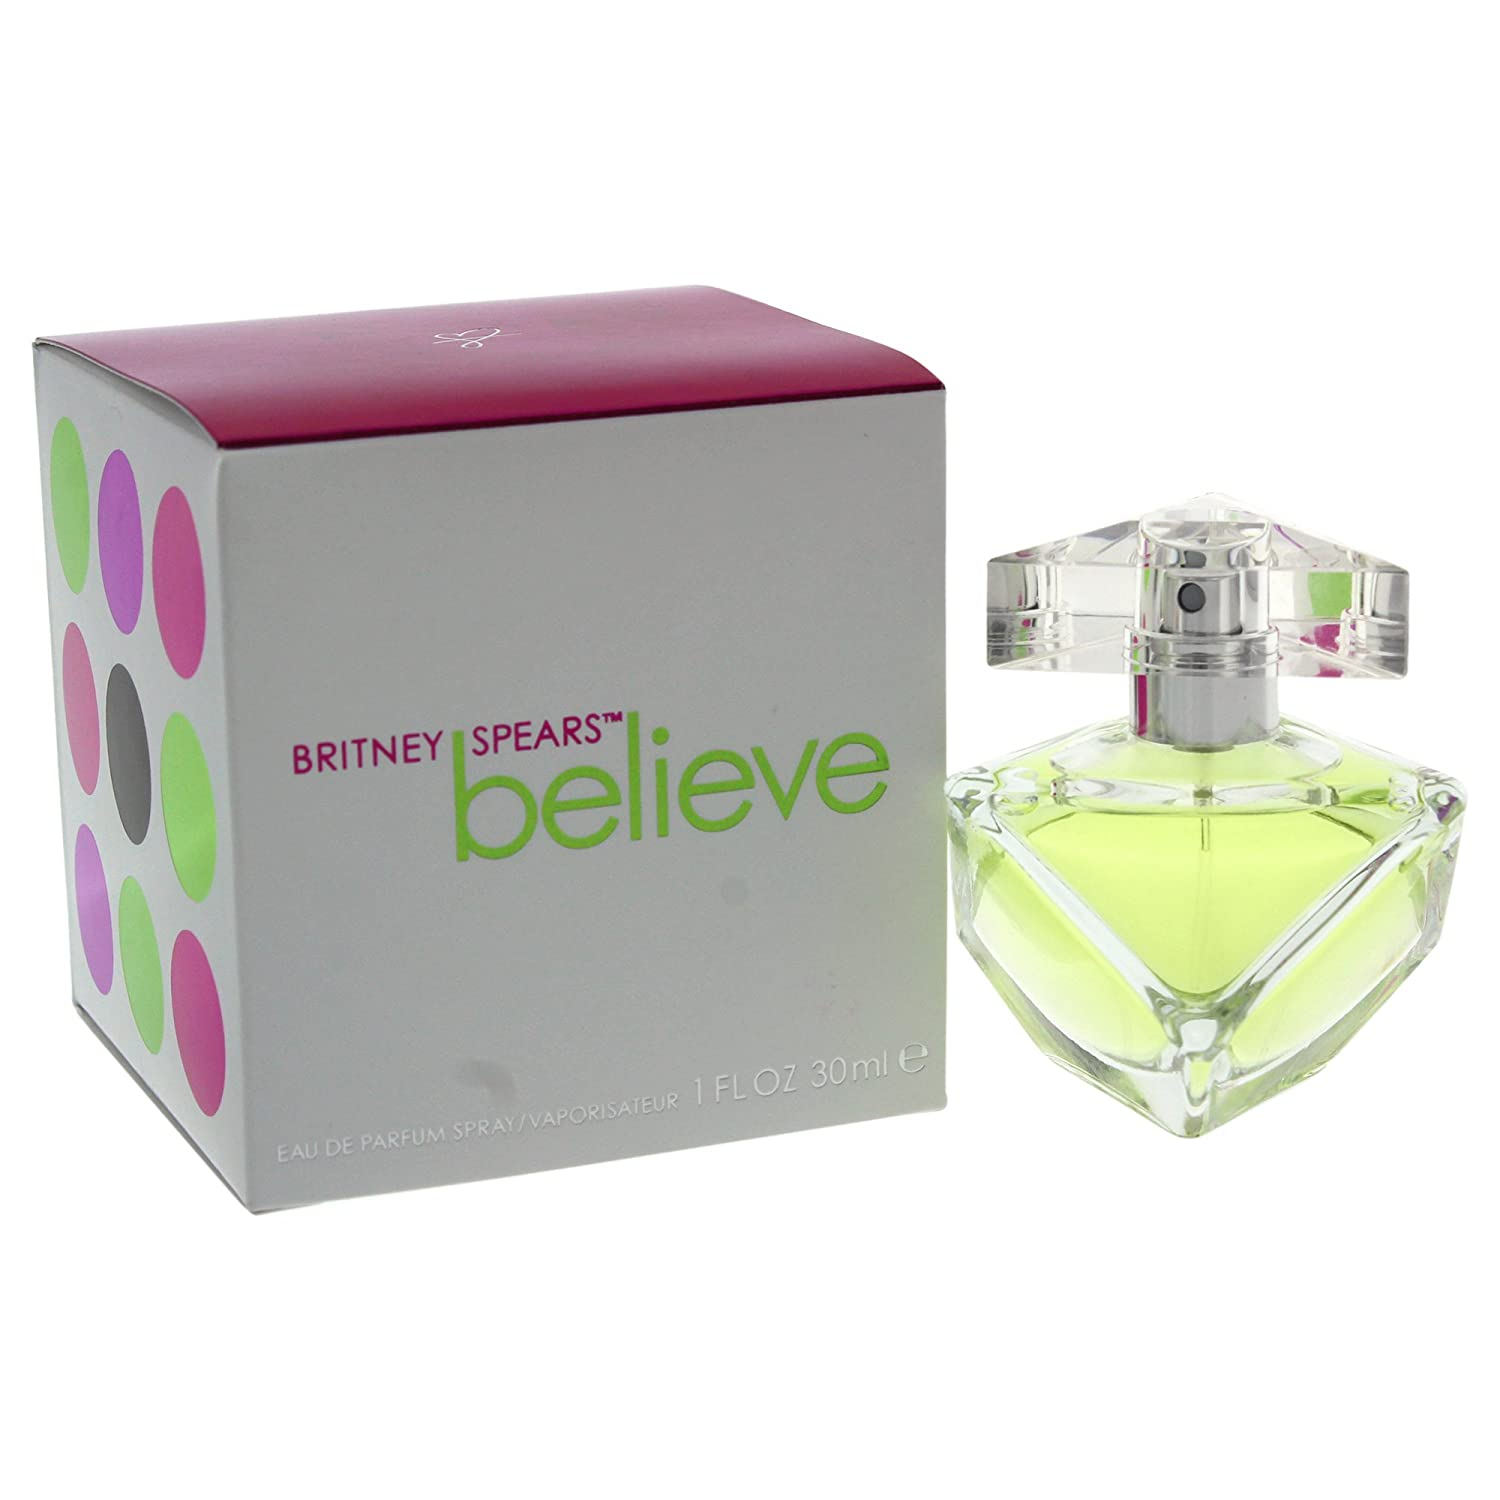 Britney Spears Believe Agua de Perfume - 30 ml 160498